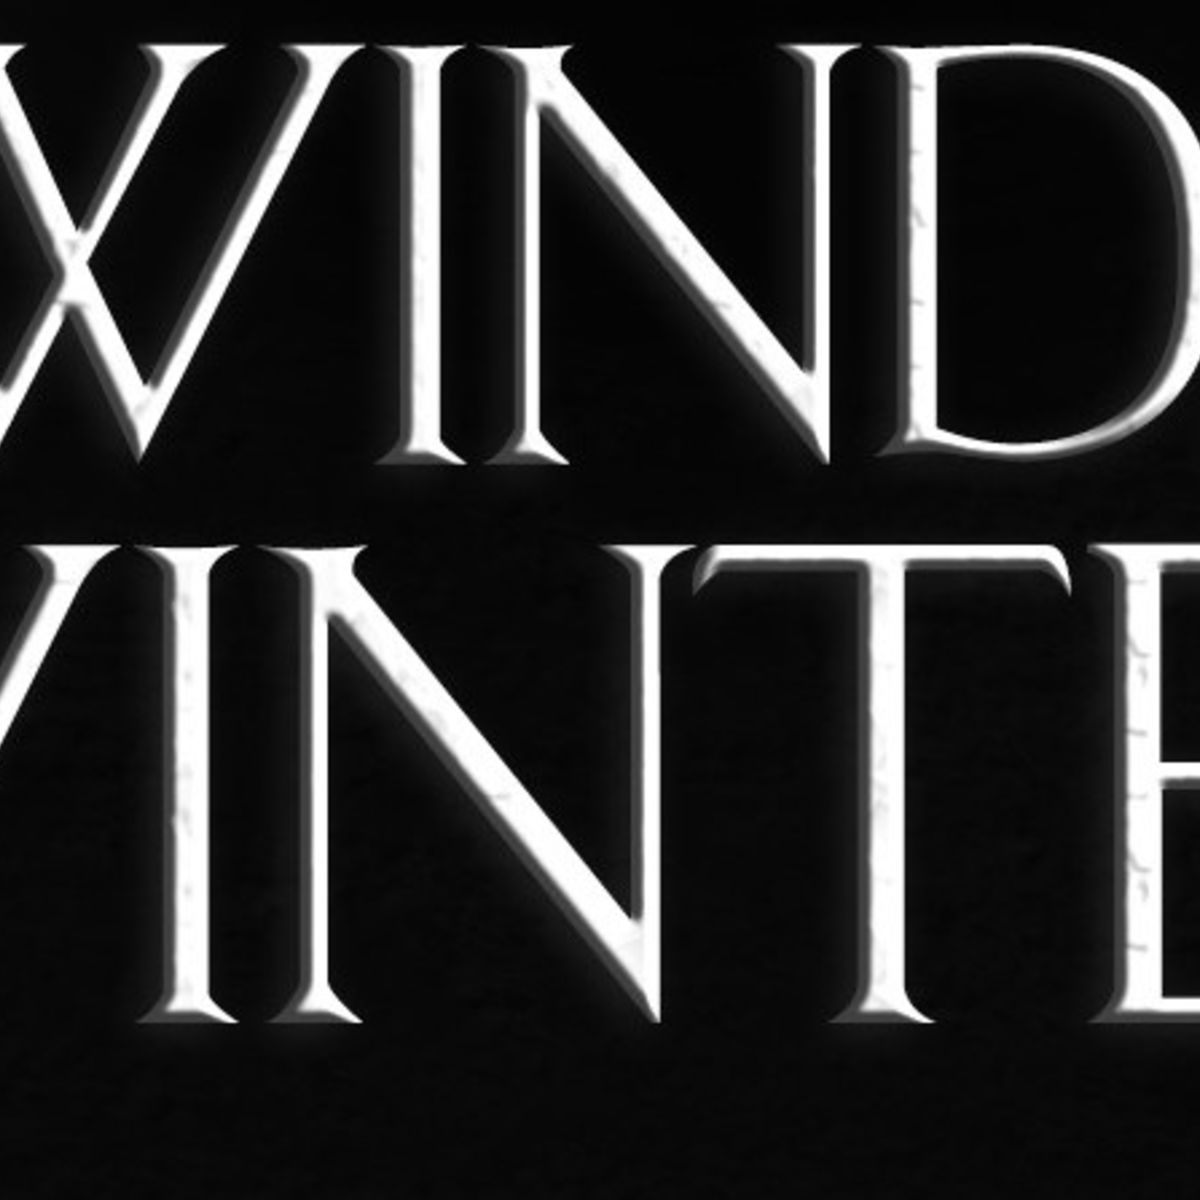 WindsofWintercover.jpg